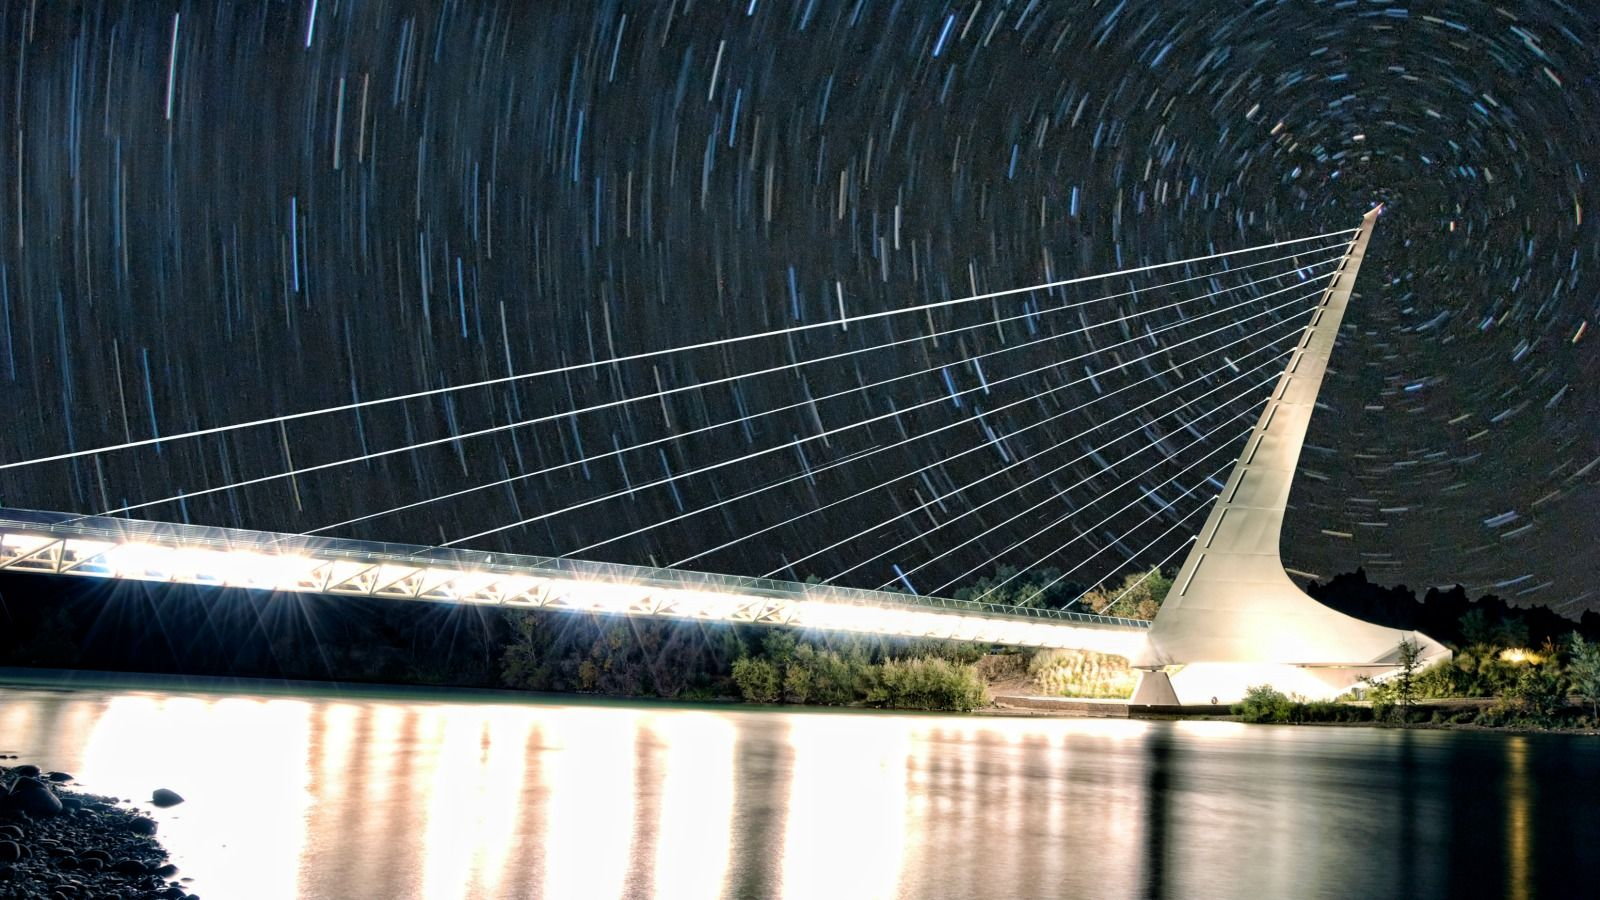 Sheraton Redding Hotel at the Sundial Bridge - Sundial Bridge